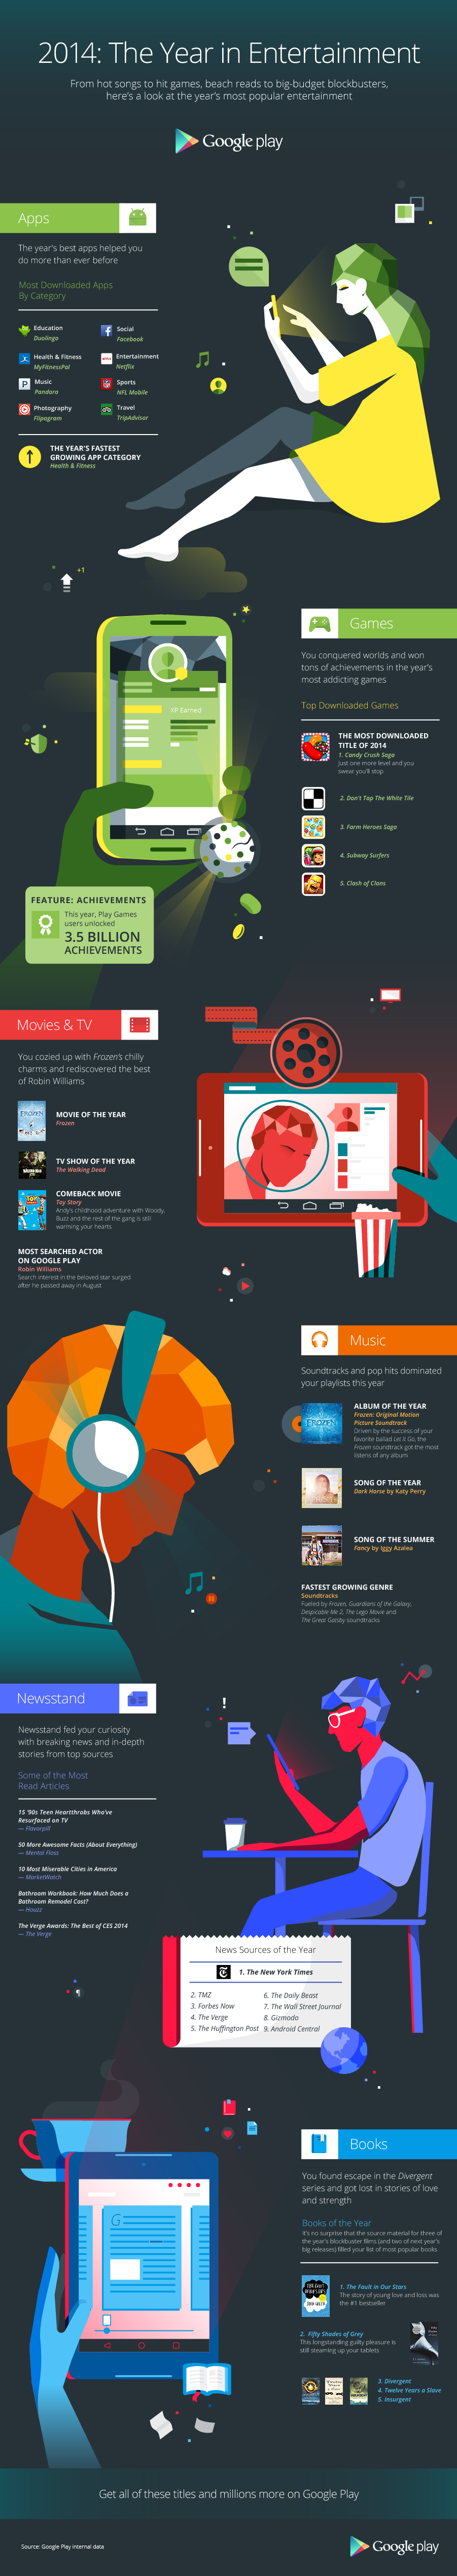 Google_Play_-_End_of_Year_Infographic_-_2014_-_FINAL